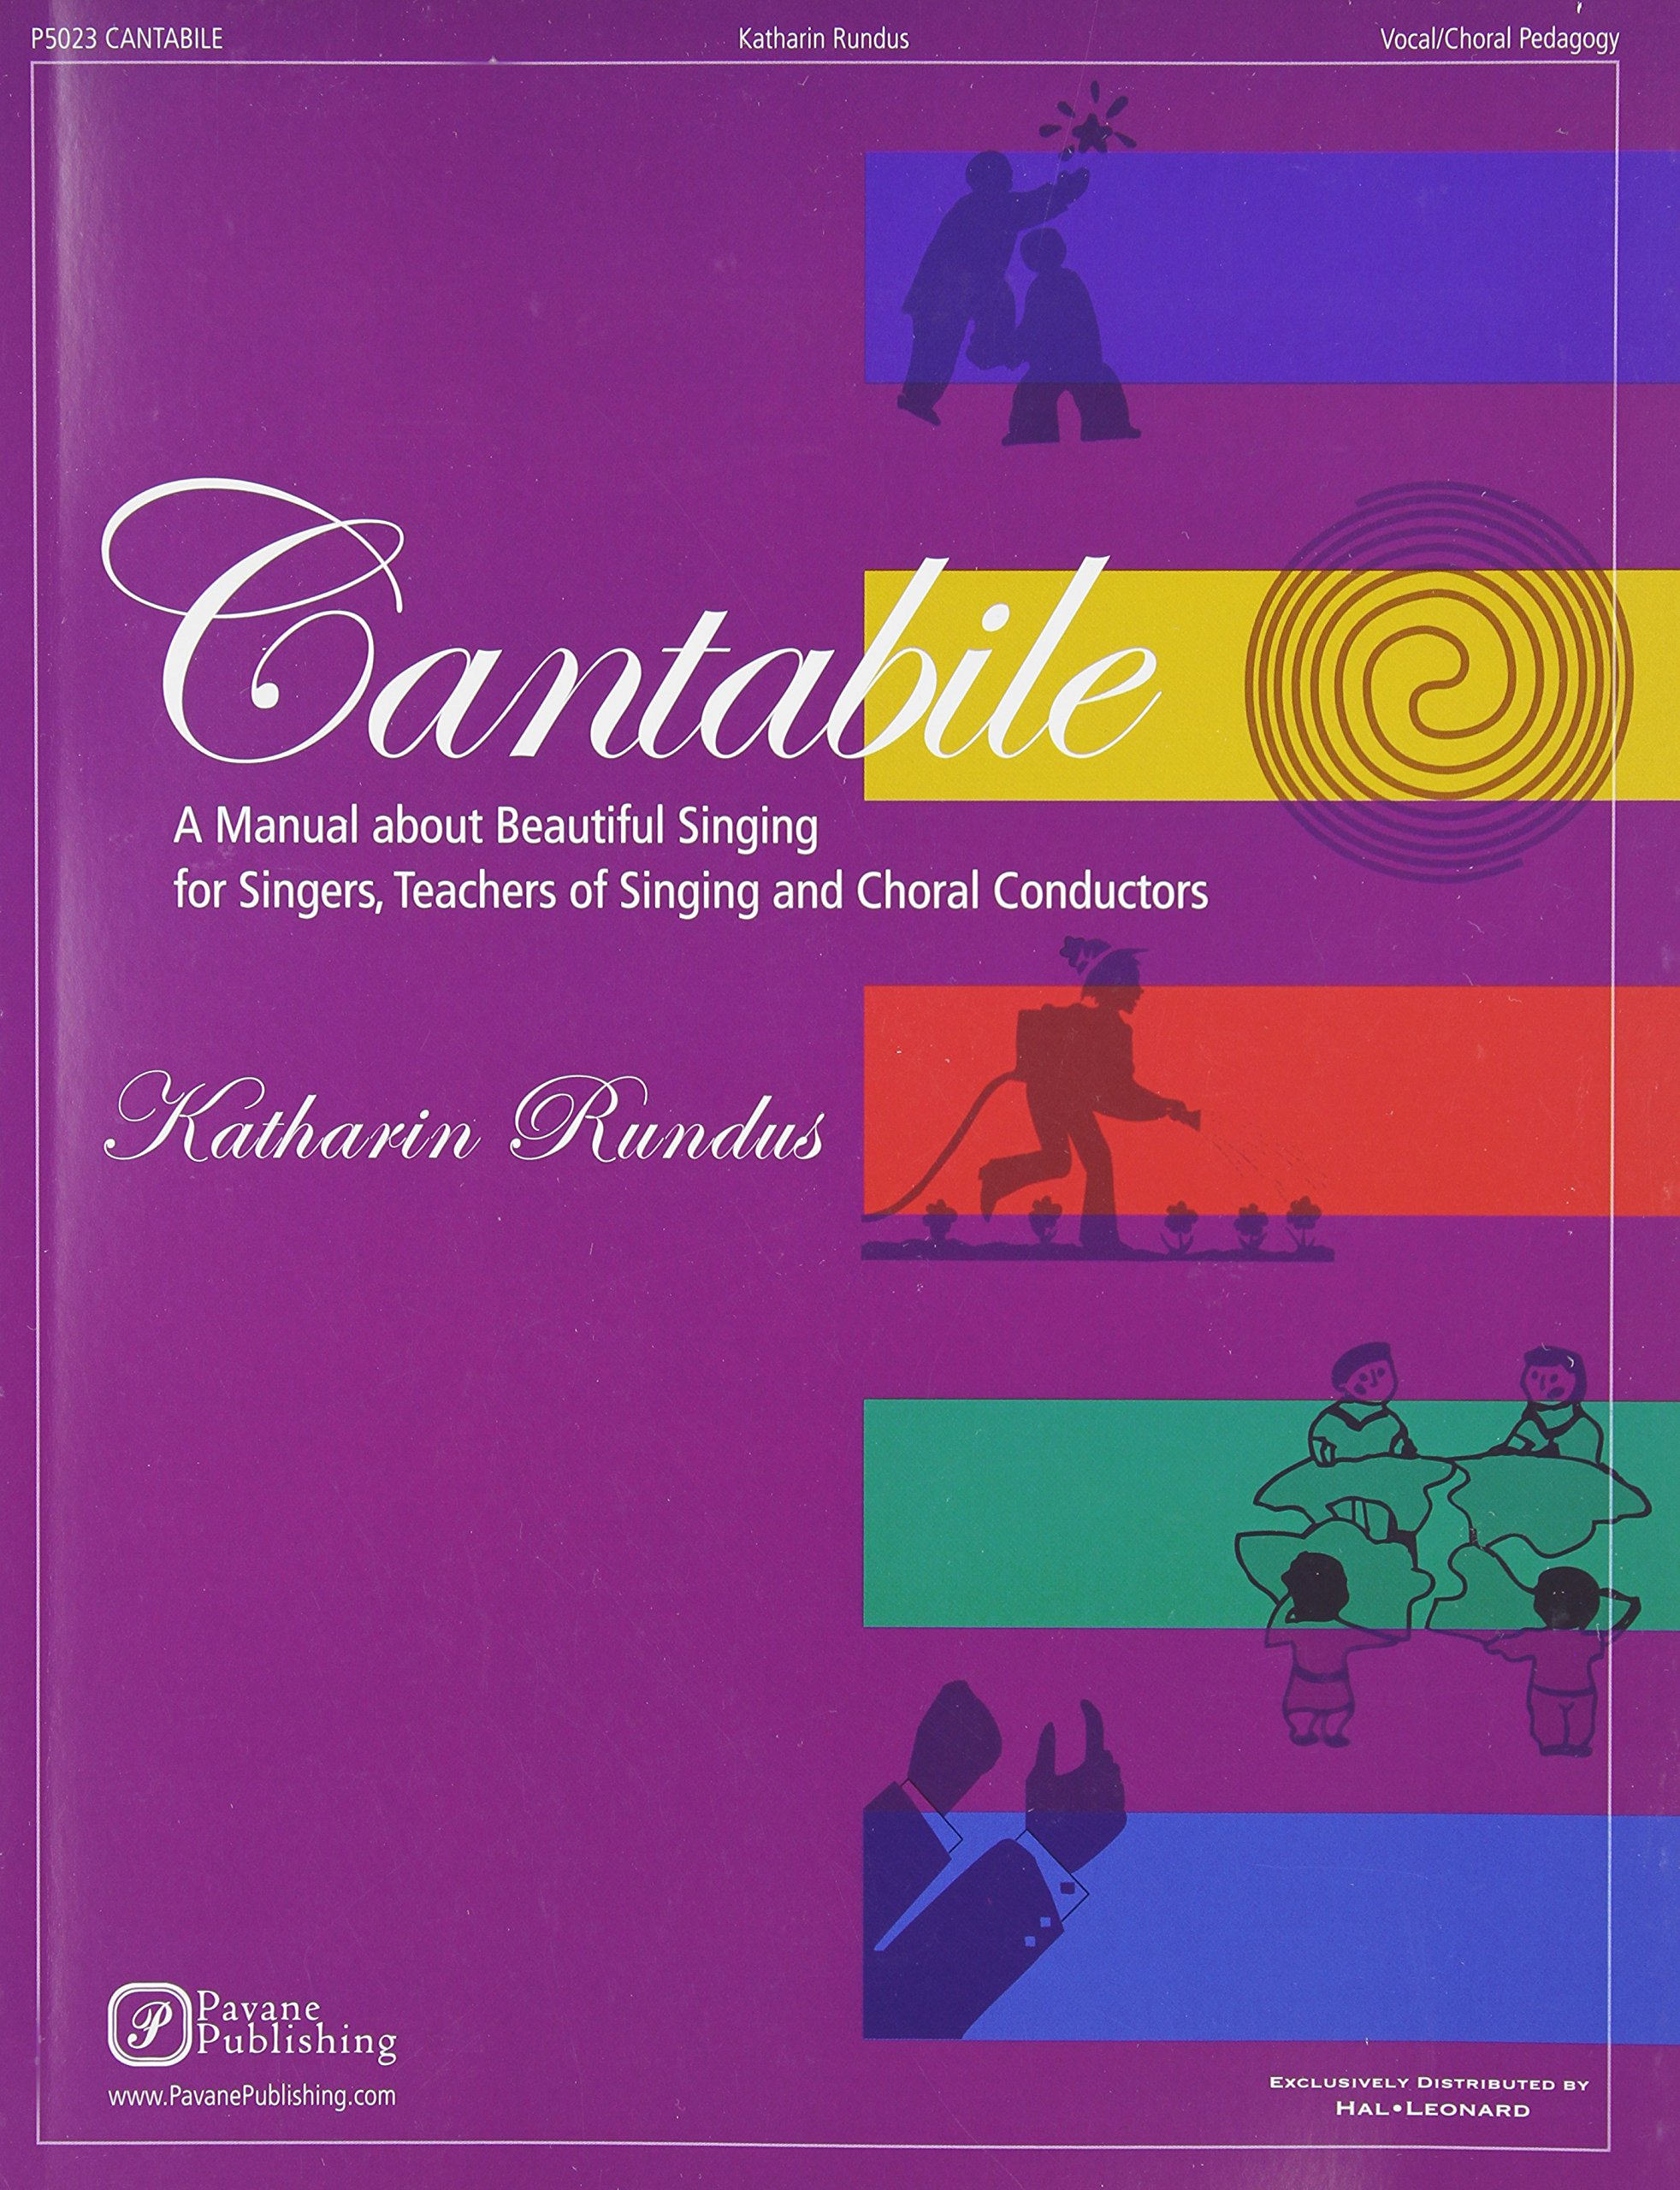 Cantabile - A Manual about Beautiful Singing for Singers, Teachers of Singing and Choral Conductors by Pavane Publishing